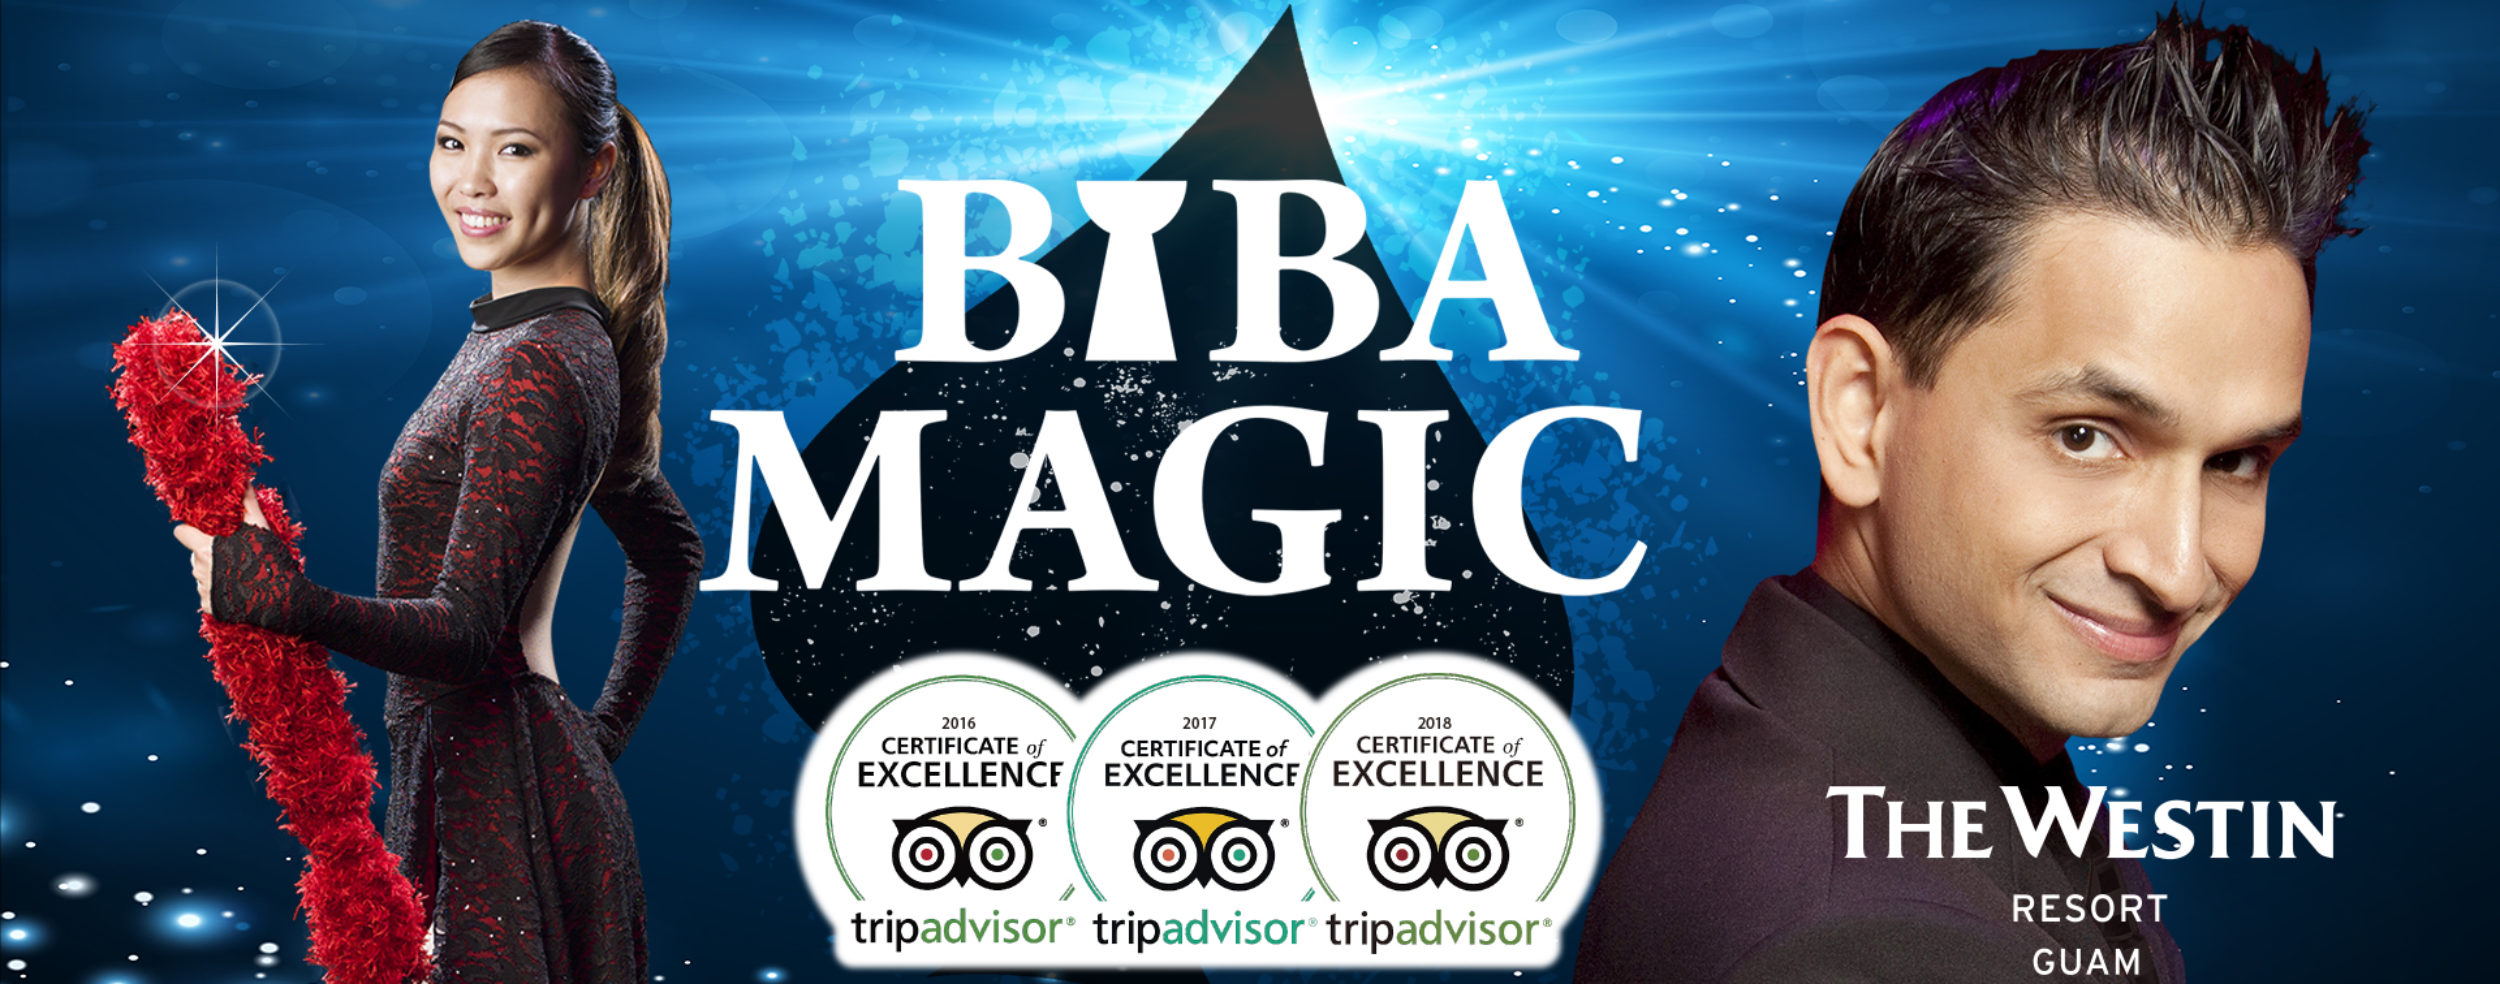 Biba Magic Theater